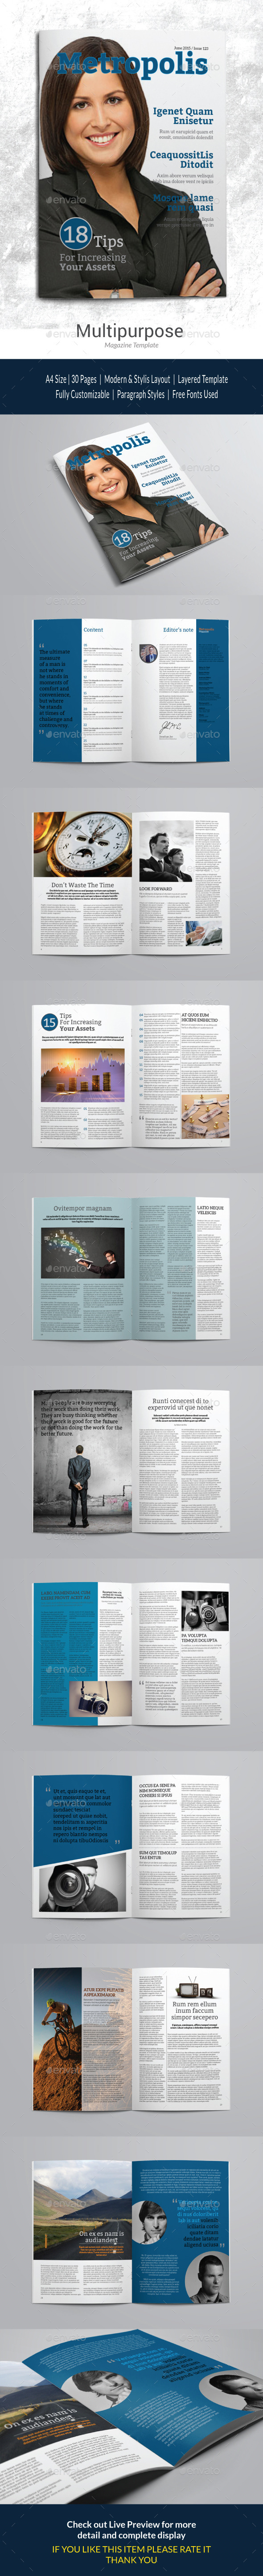 Indesign Magazine Template vol 1 - Magazines Print Templates